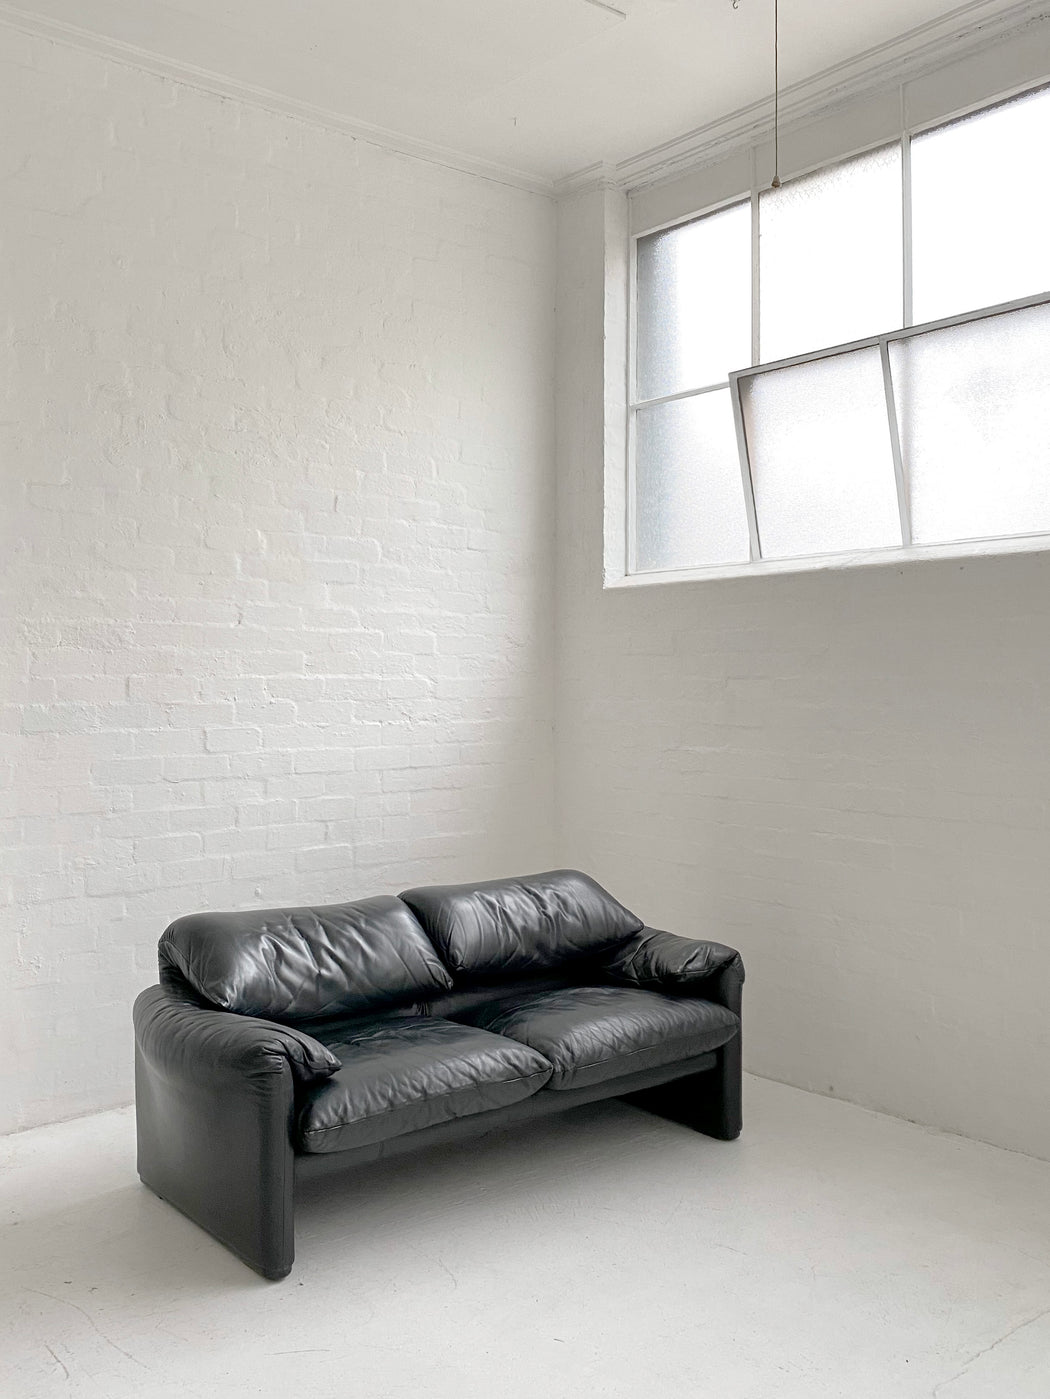 Vico Magistretti 'Maralunga' Leather Sofa